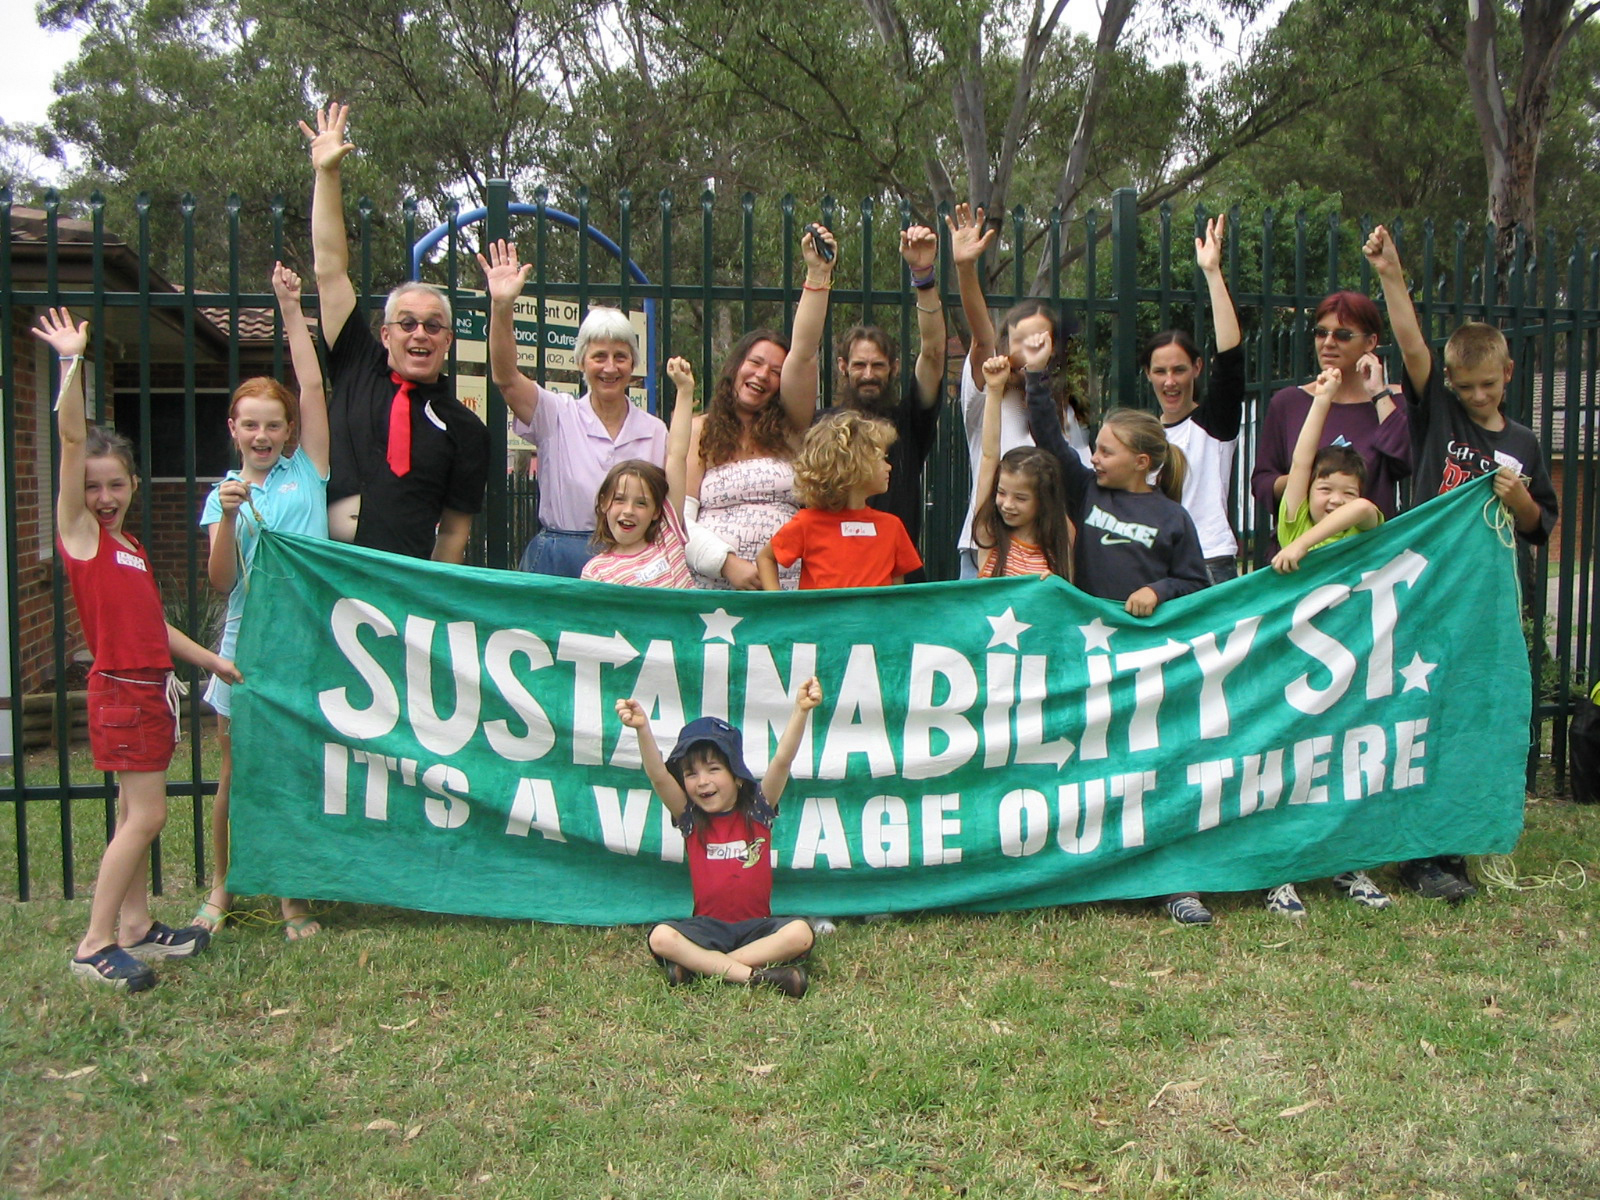 A Sustainability Street community